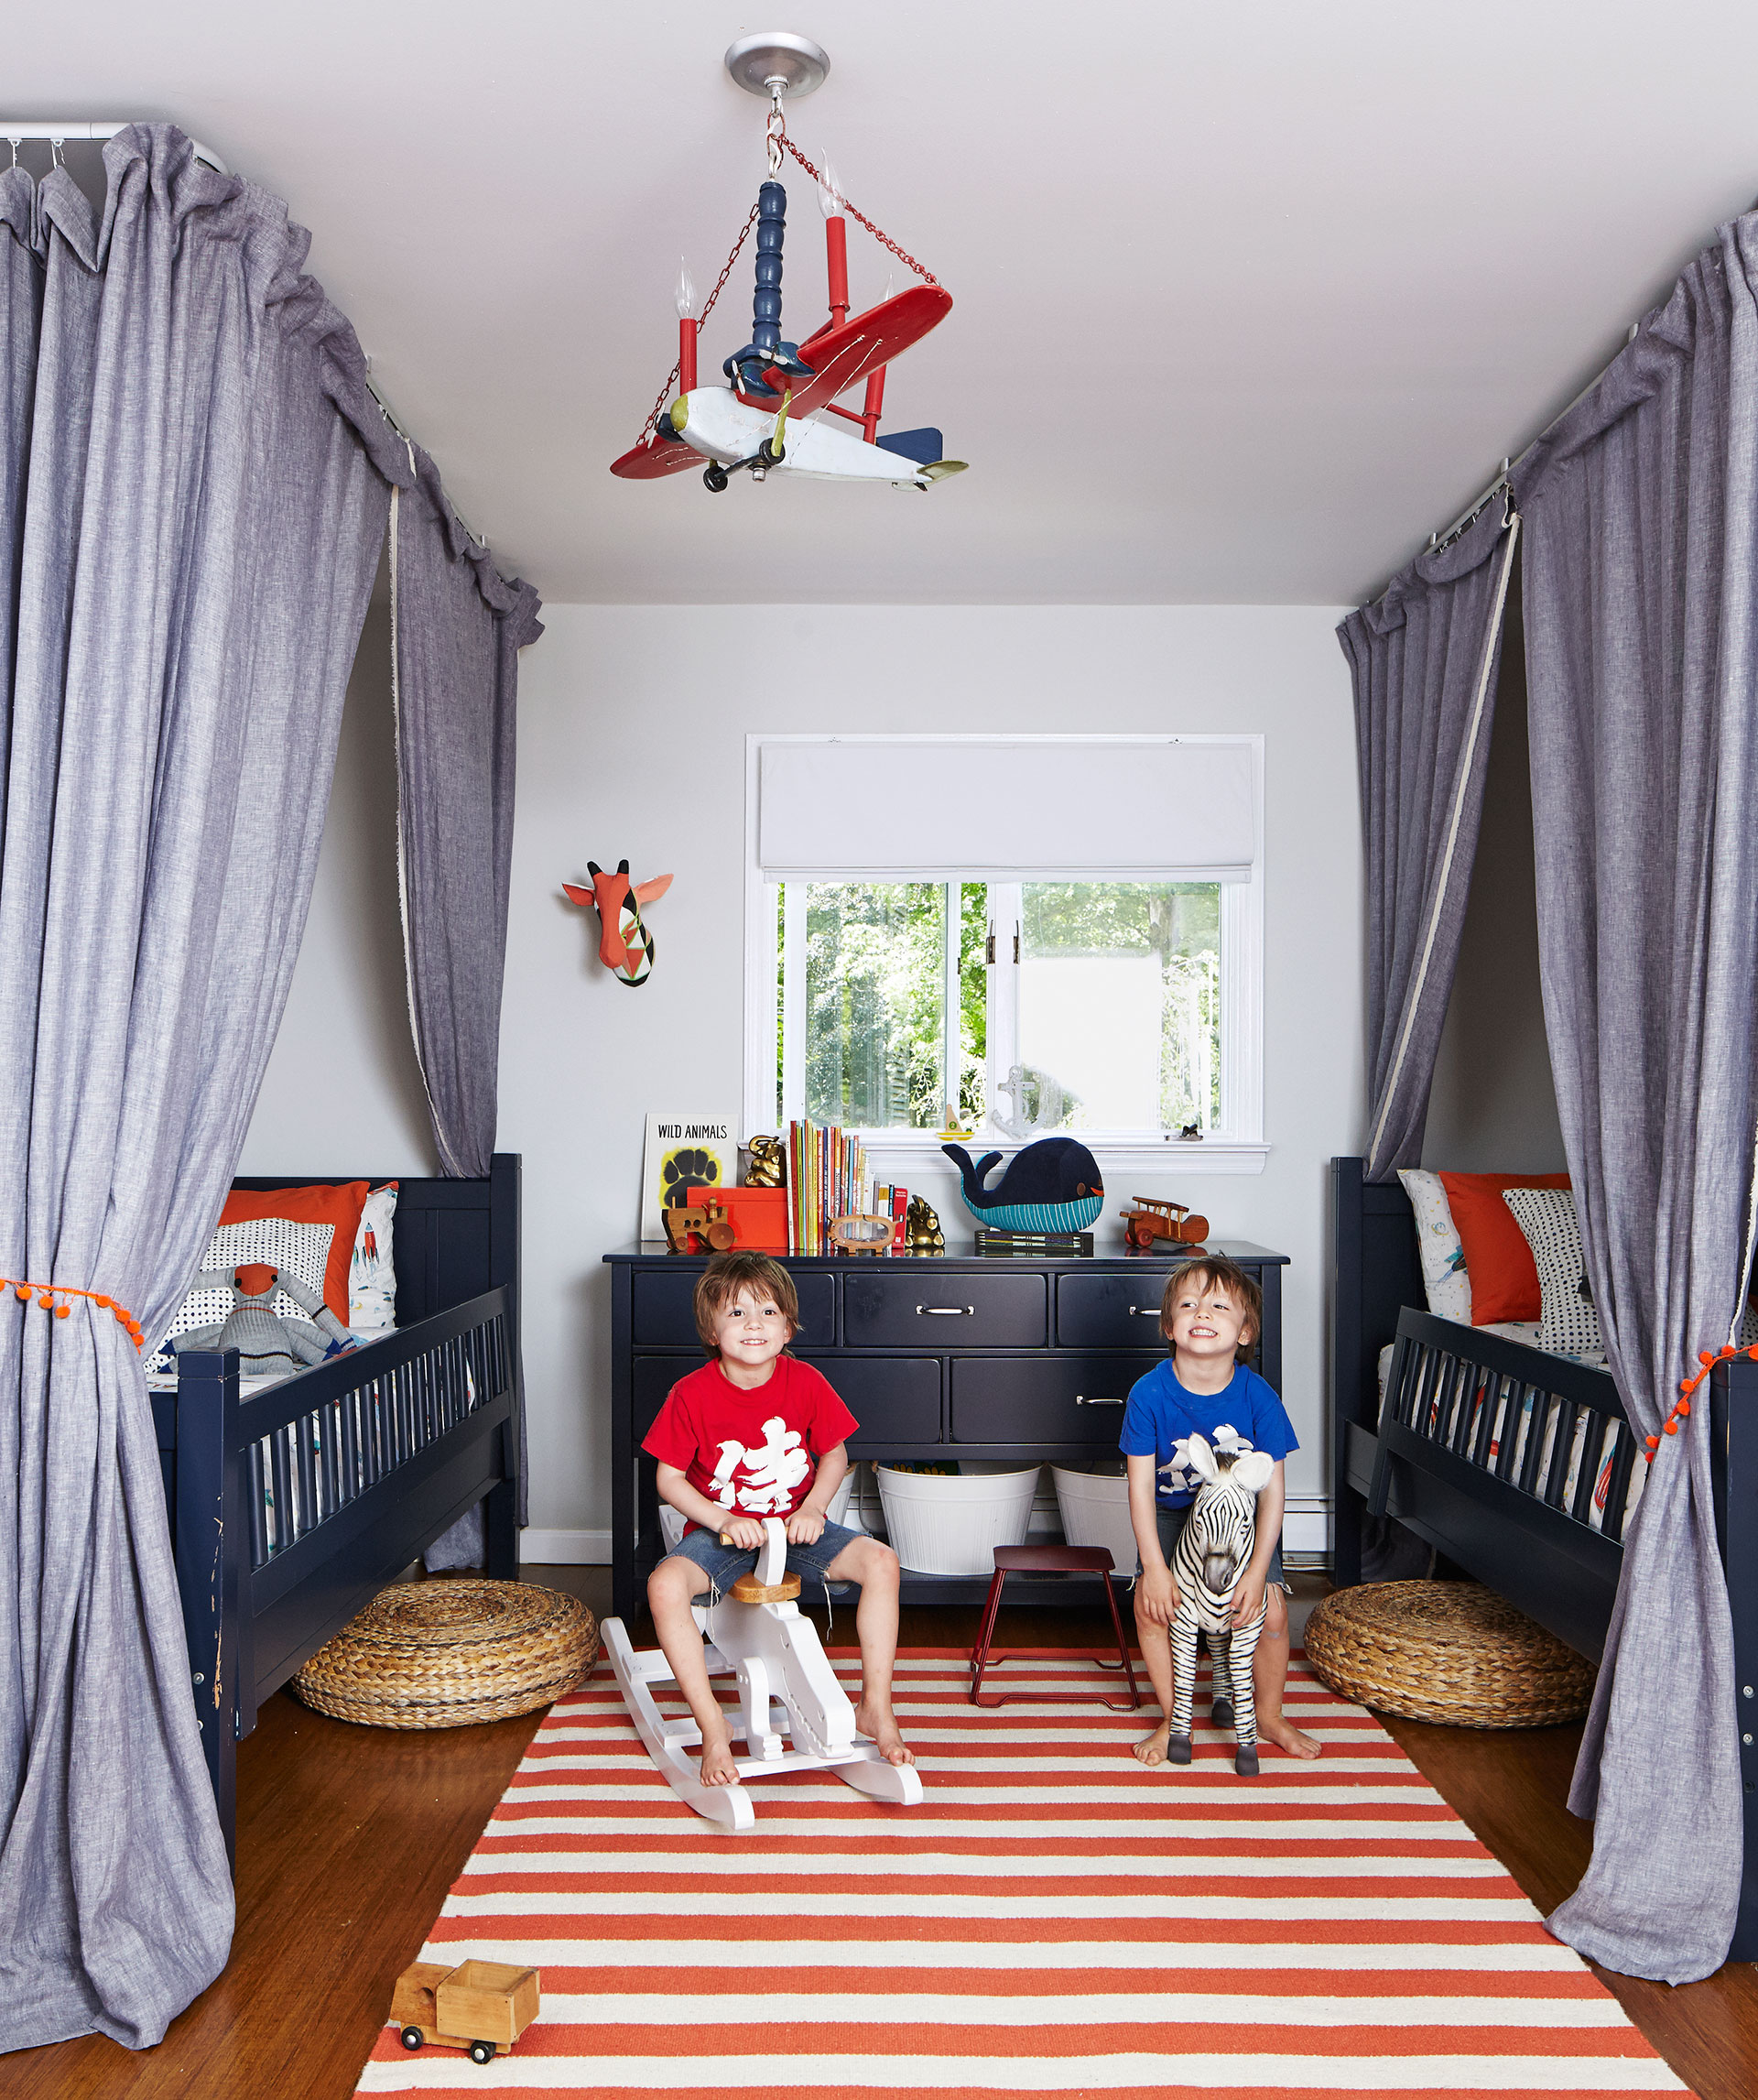 Room Ideas For Kids 50 Kids Room Decor Ideas  Bedroom Design And Decorating For Kids